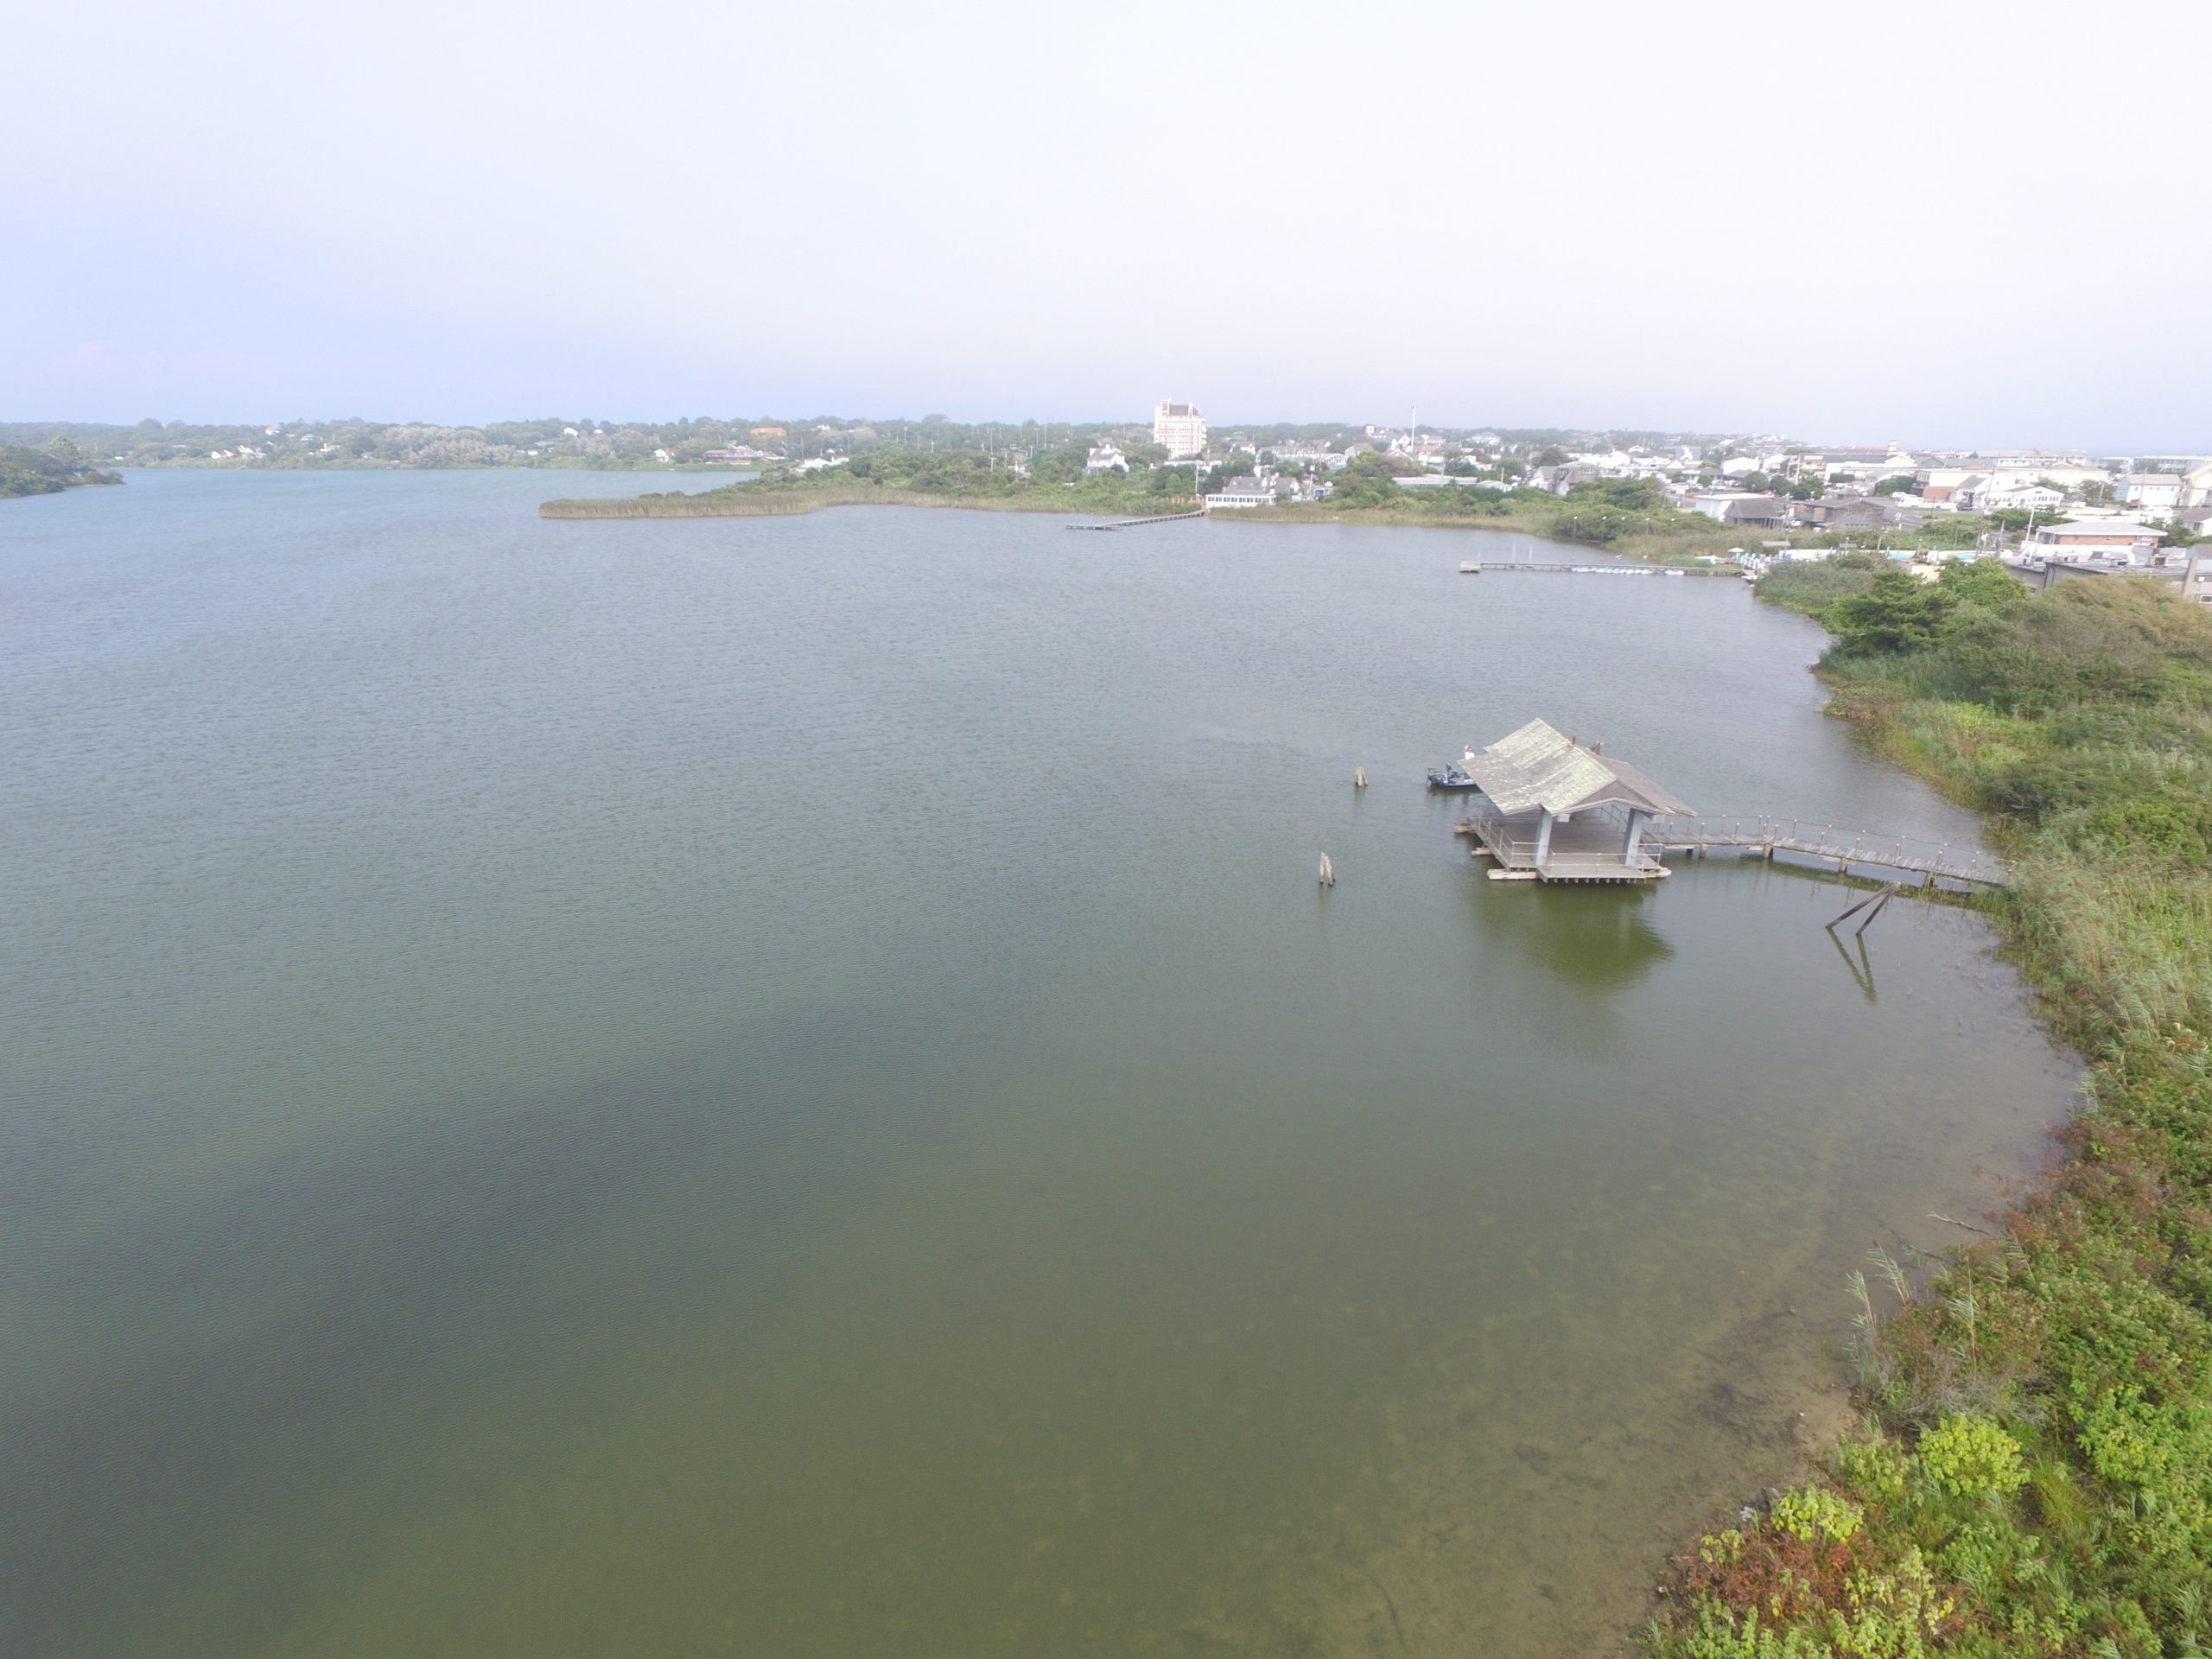 Algae blooms in places like Montauk's Fort Pond are frequently set off after heavy rains wash large amounts of nutrients into water. If they come following long dry periods, the effects can be ampliefied even further.